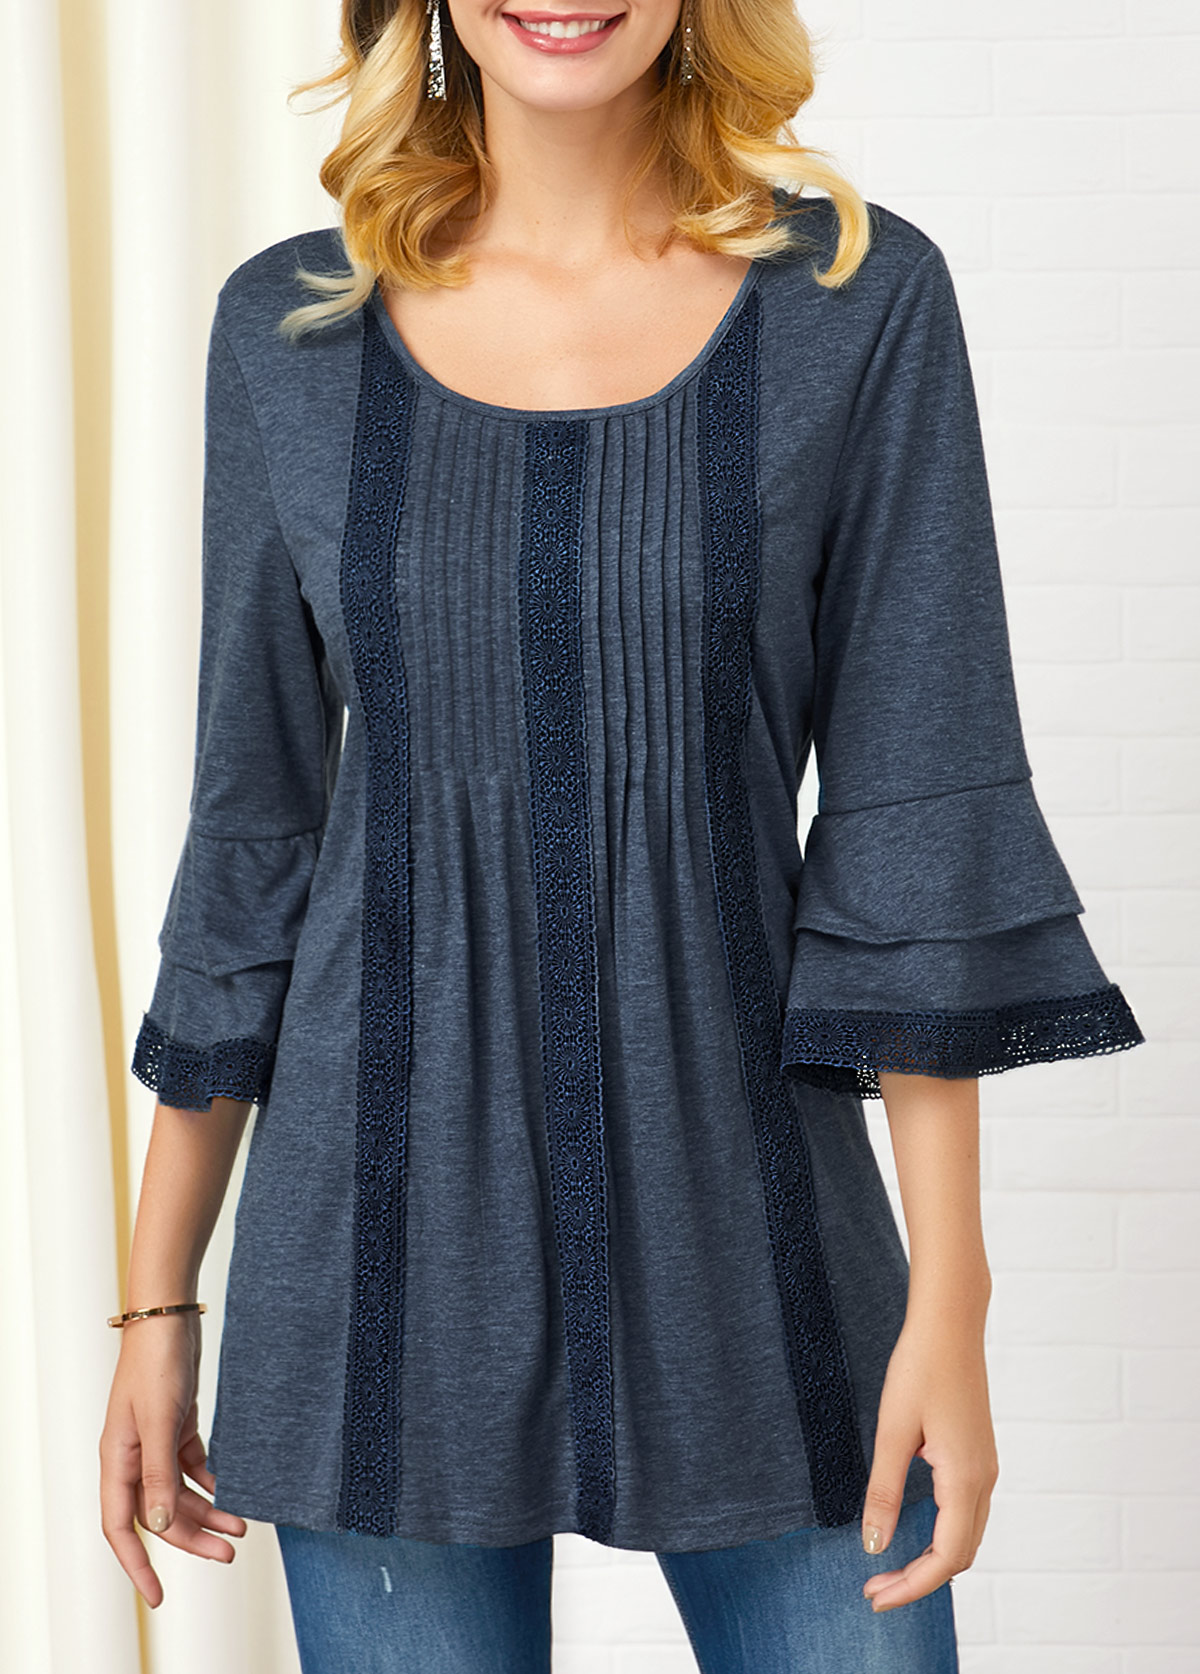 ROTITA Crinkle Chest Layered Bell Sleeve Lace Patchwork T Shirt